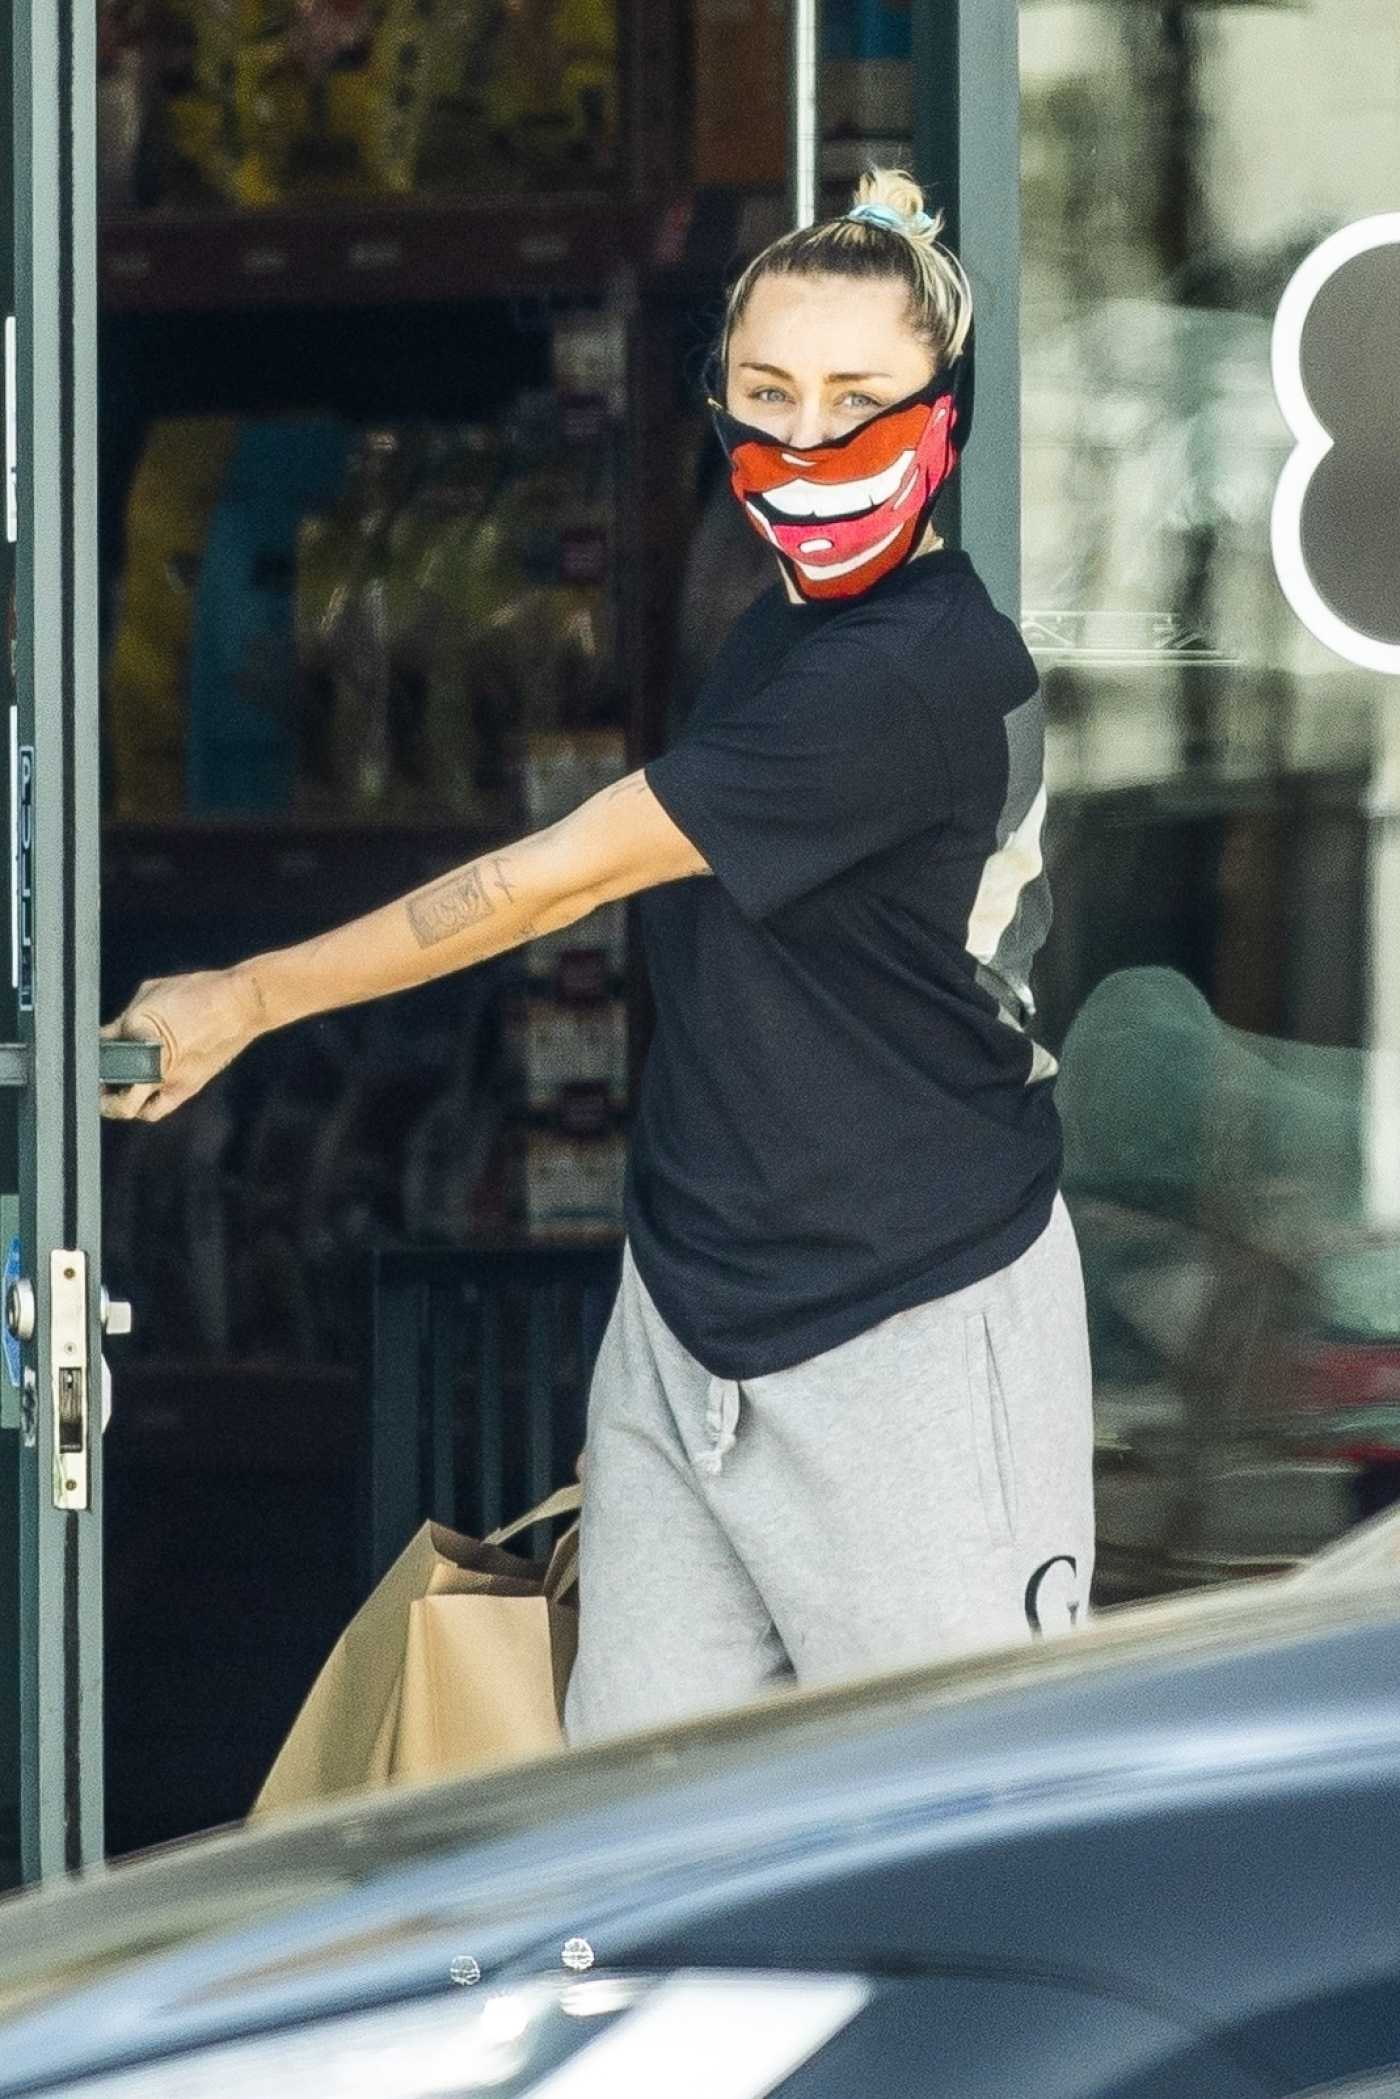 Miley Cyrus in a Black Tee Goes Shopping Out with Cody Simpson in Los Angeles 05/17/2020